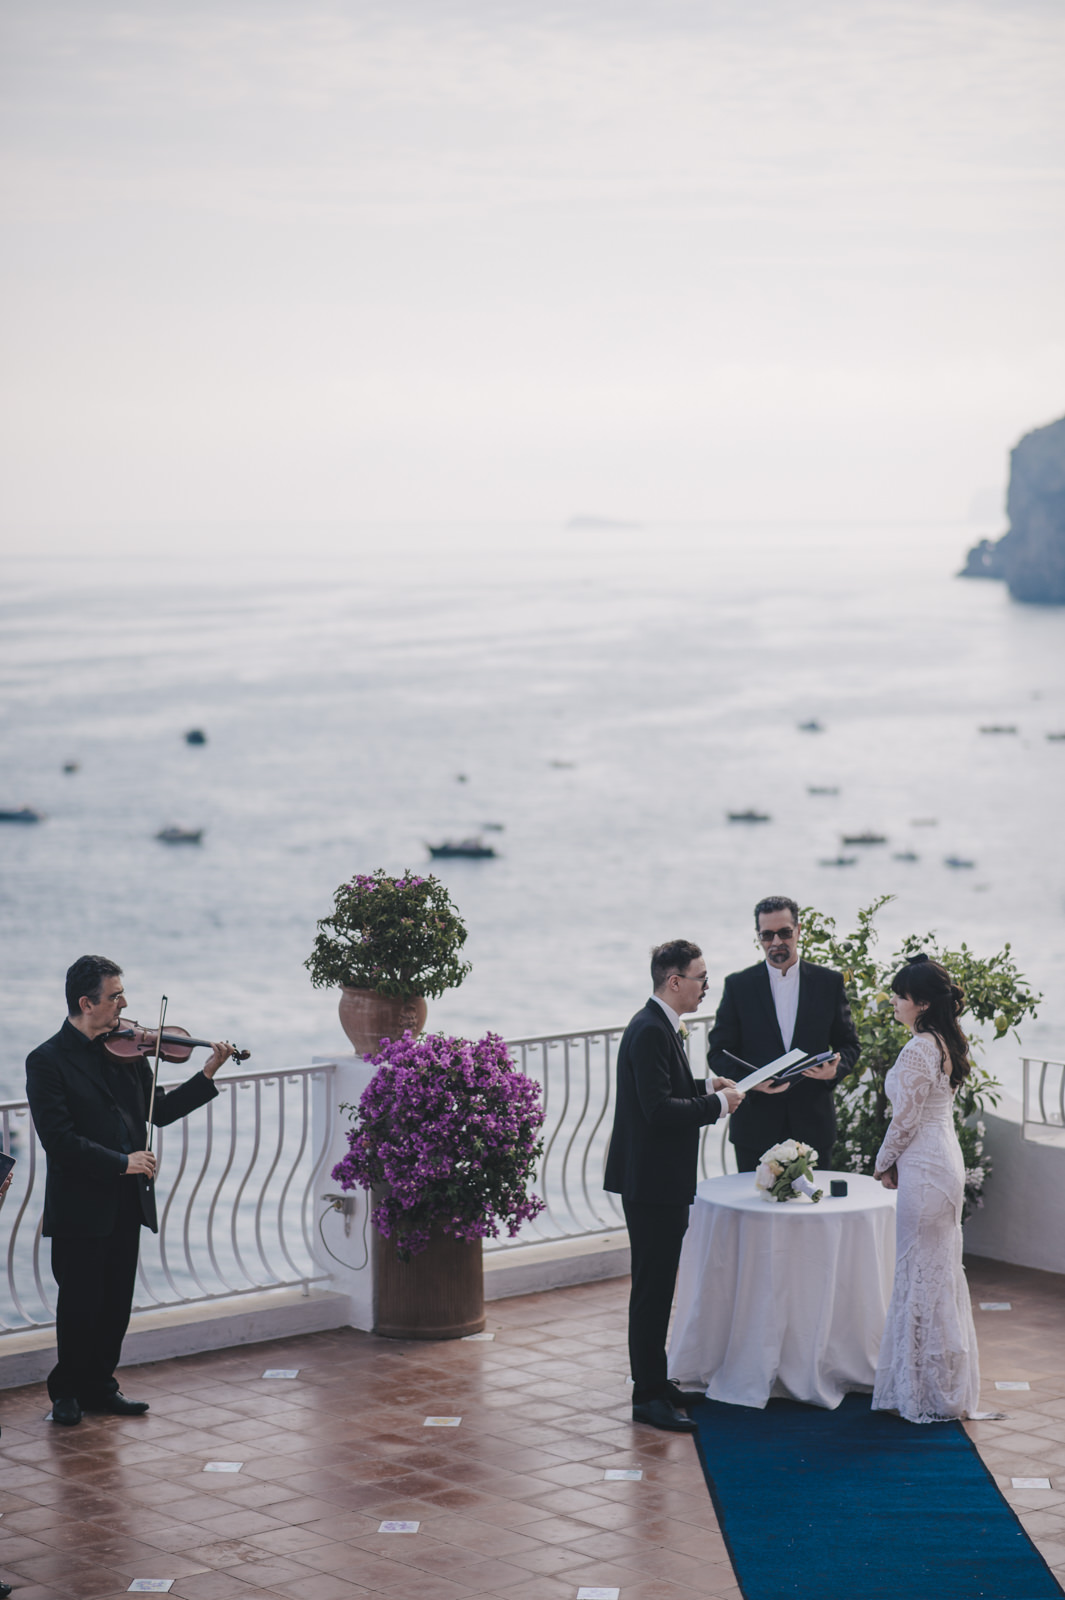 moment of the wedding ceremony on a terrace at the hotel Marincanto with the couple, the celebrant and the Violinist